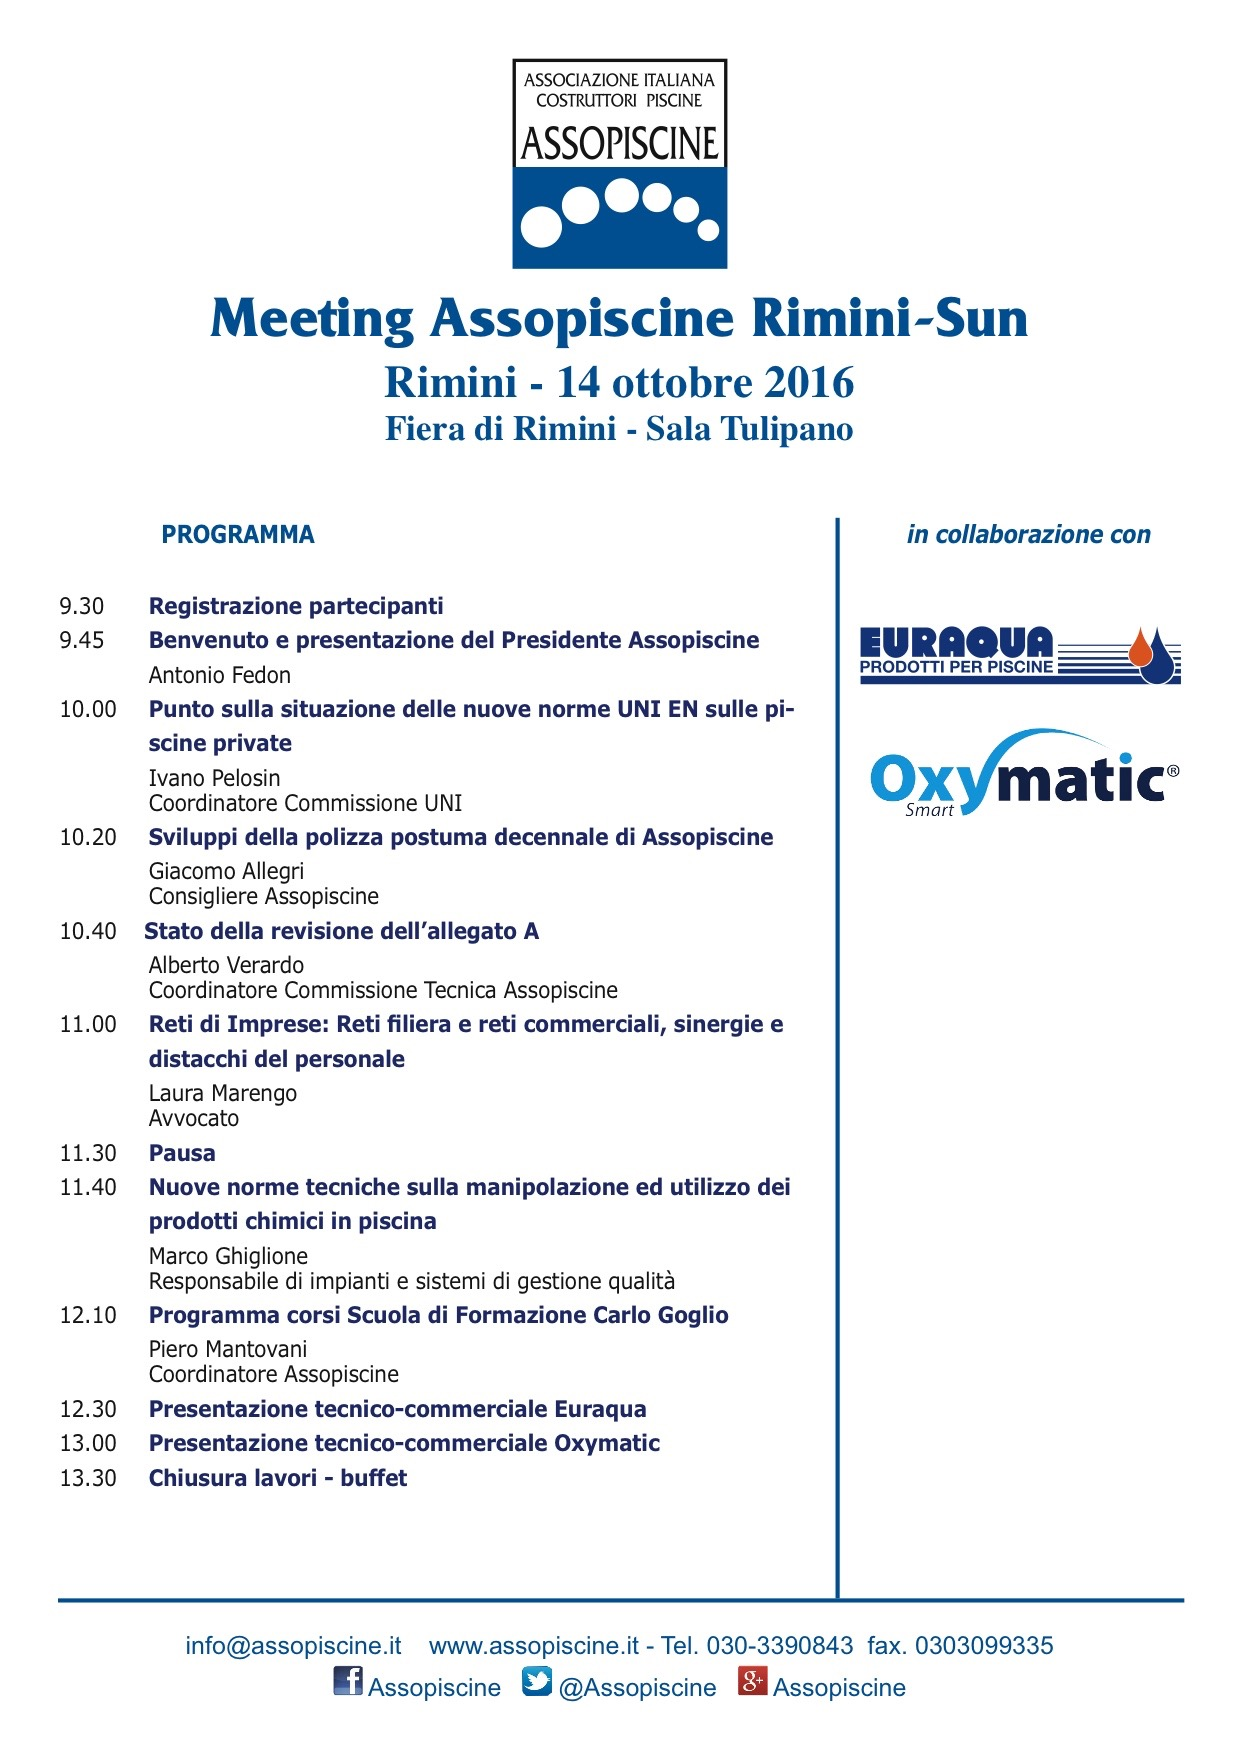 OXYMATIC MEETING ASSOPISCINE RIMINI